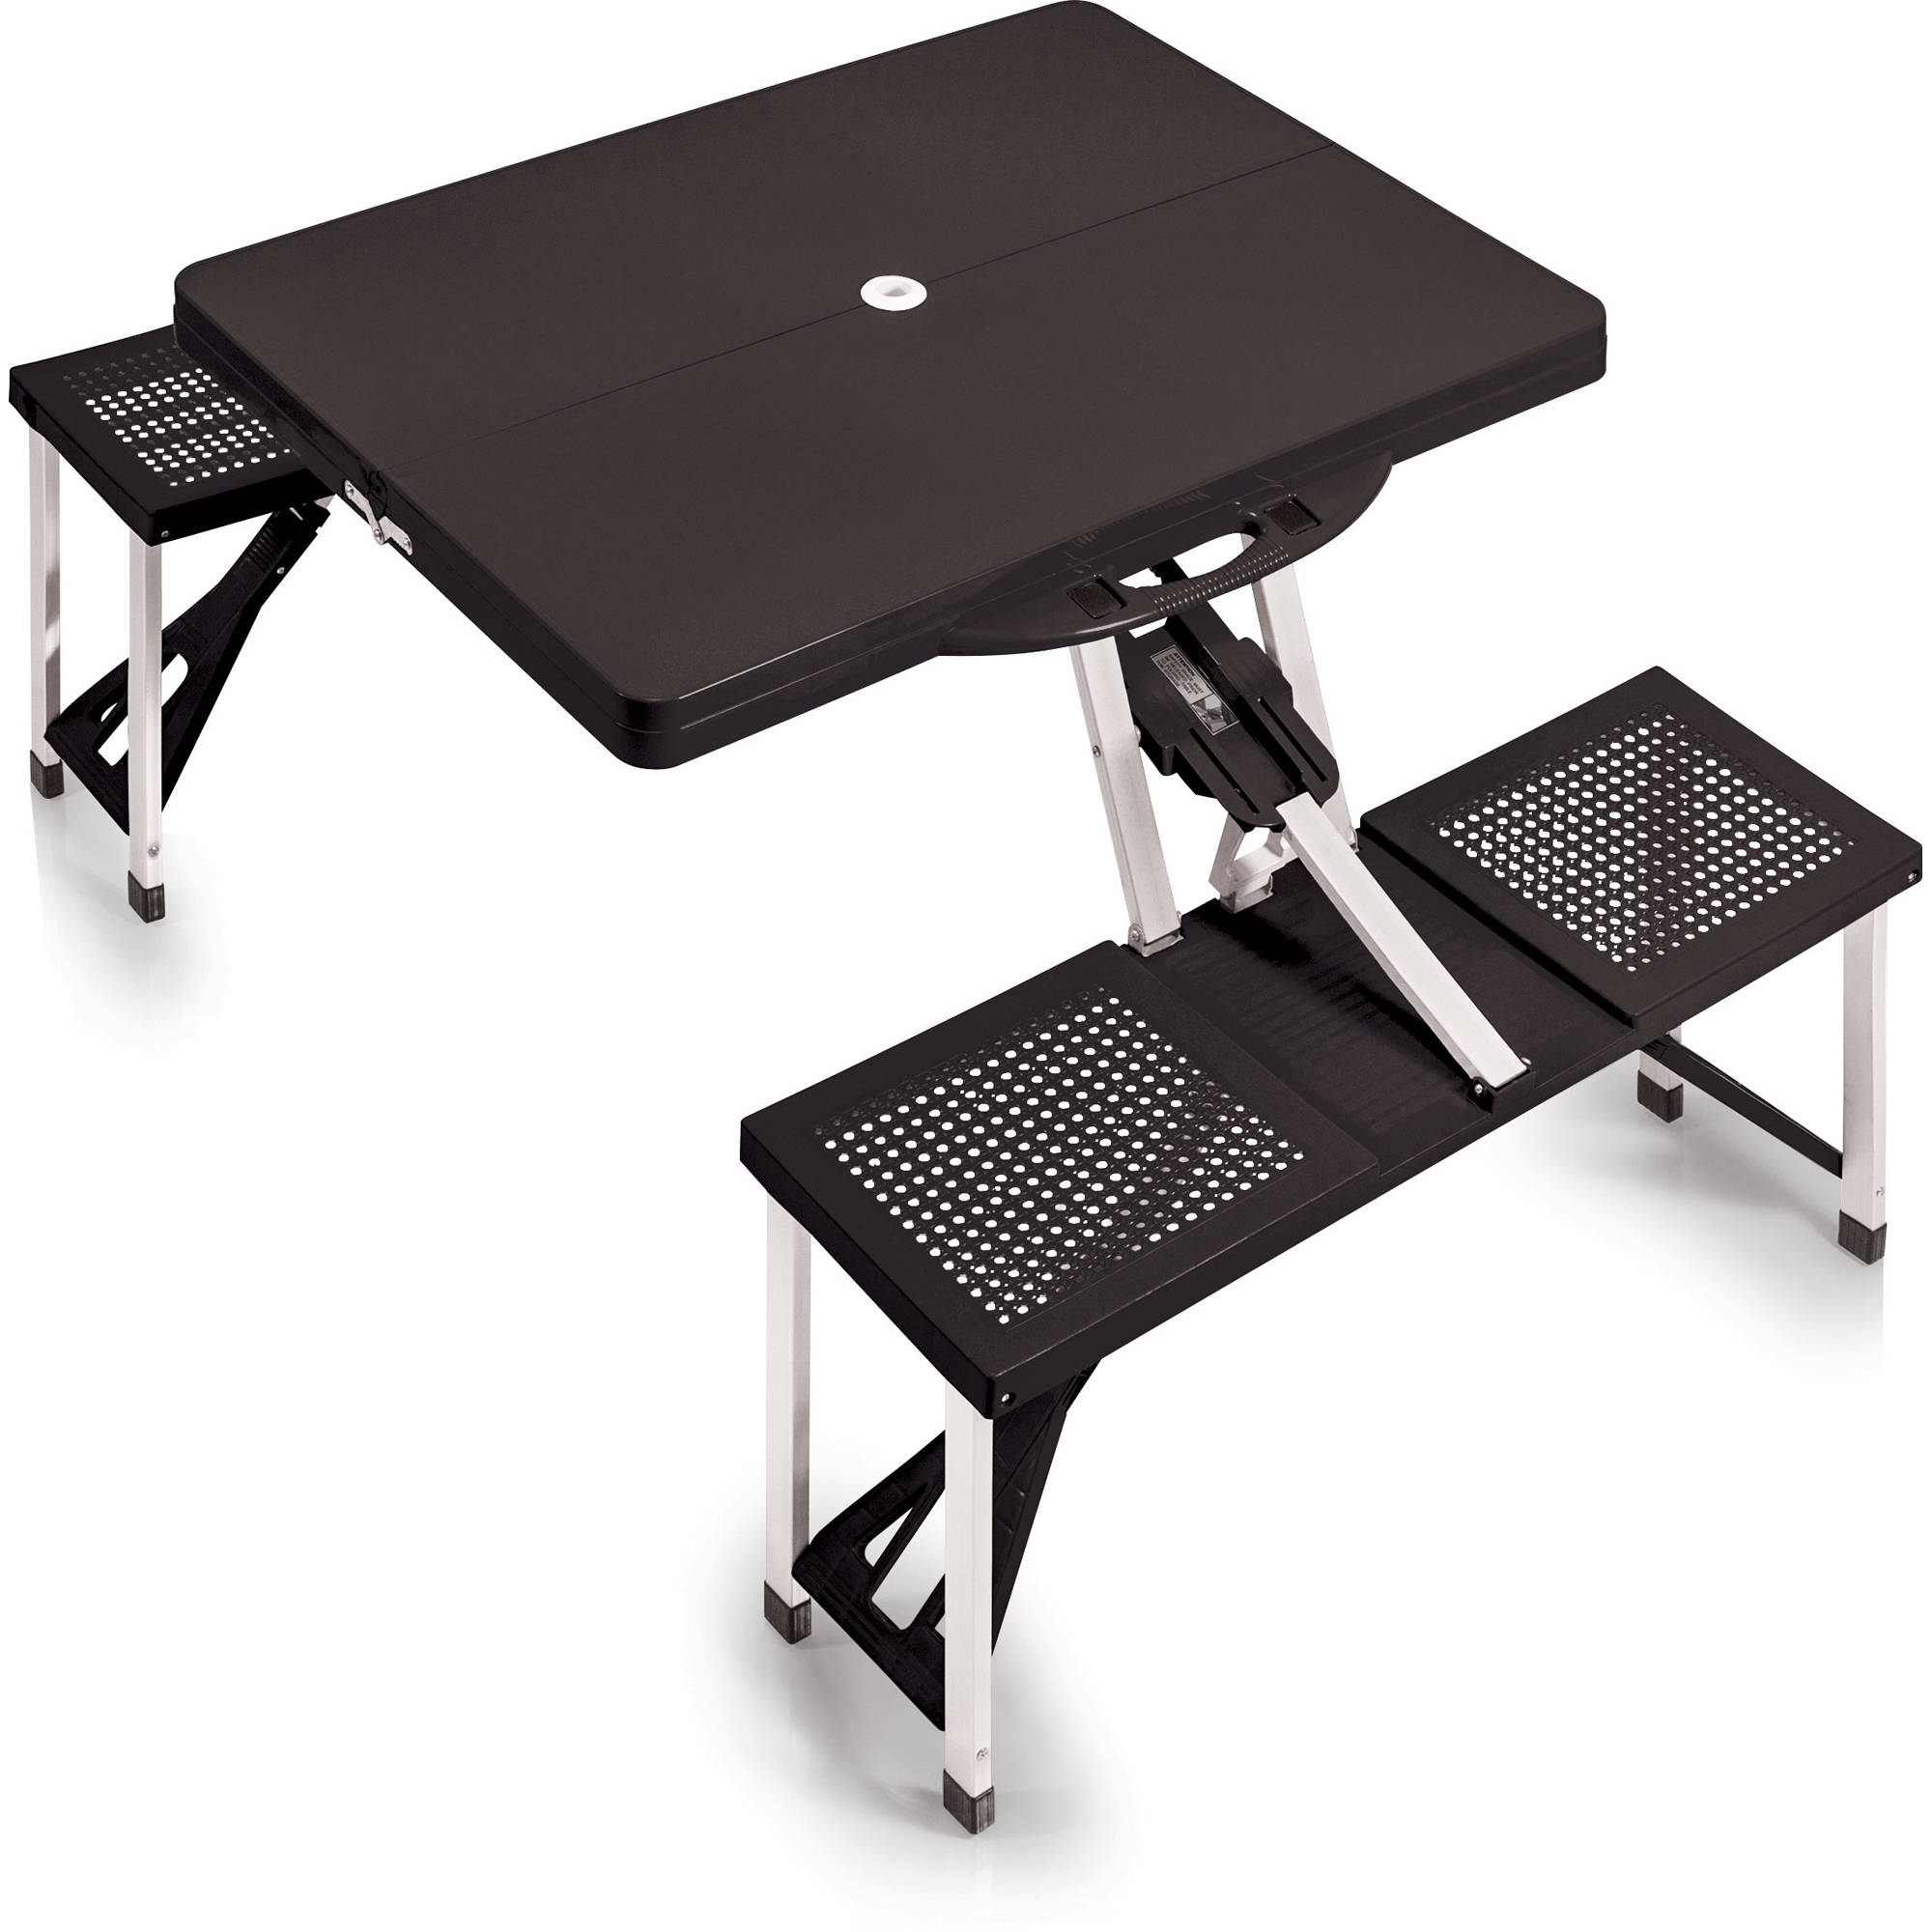 Picnic Time Portable Table With